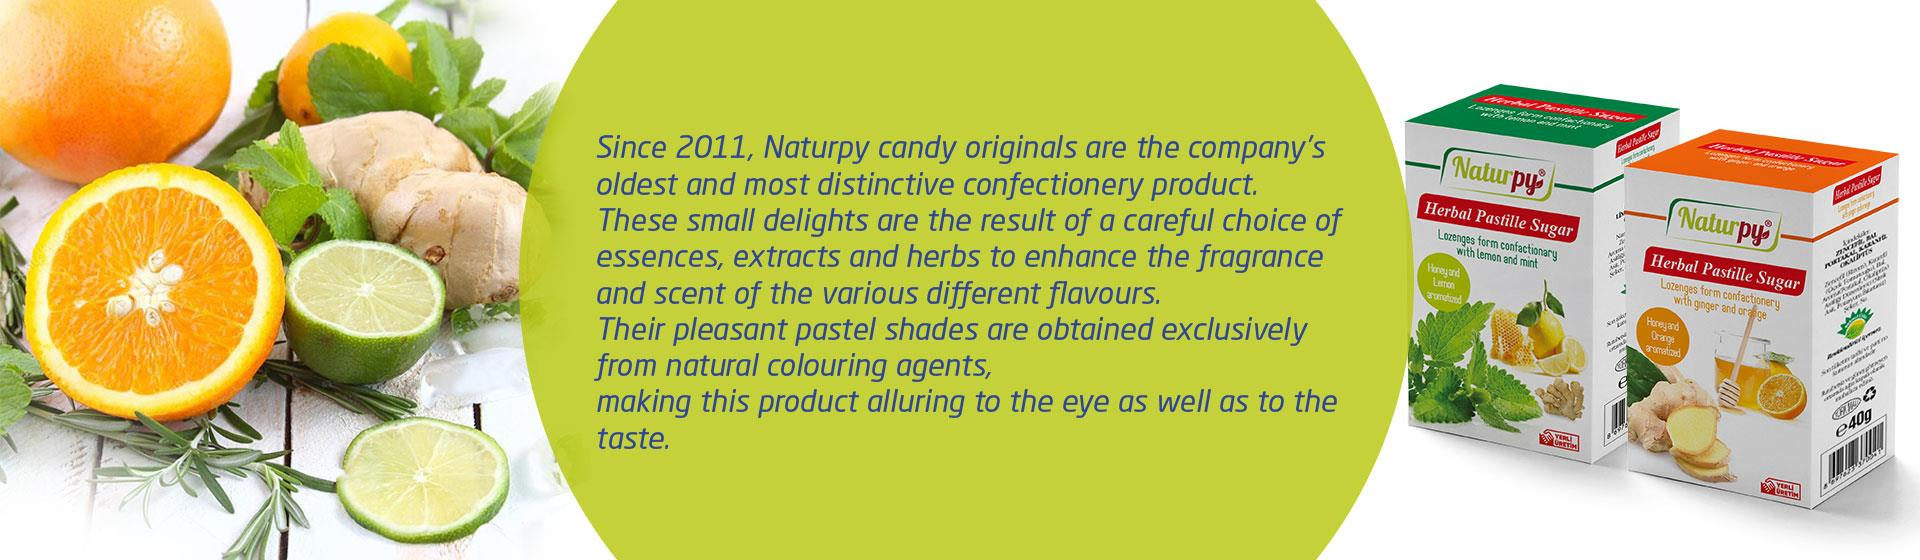 Naturpy herbal honey orange pastil candy